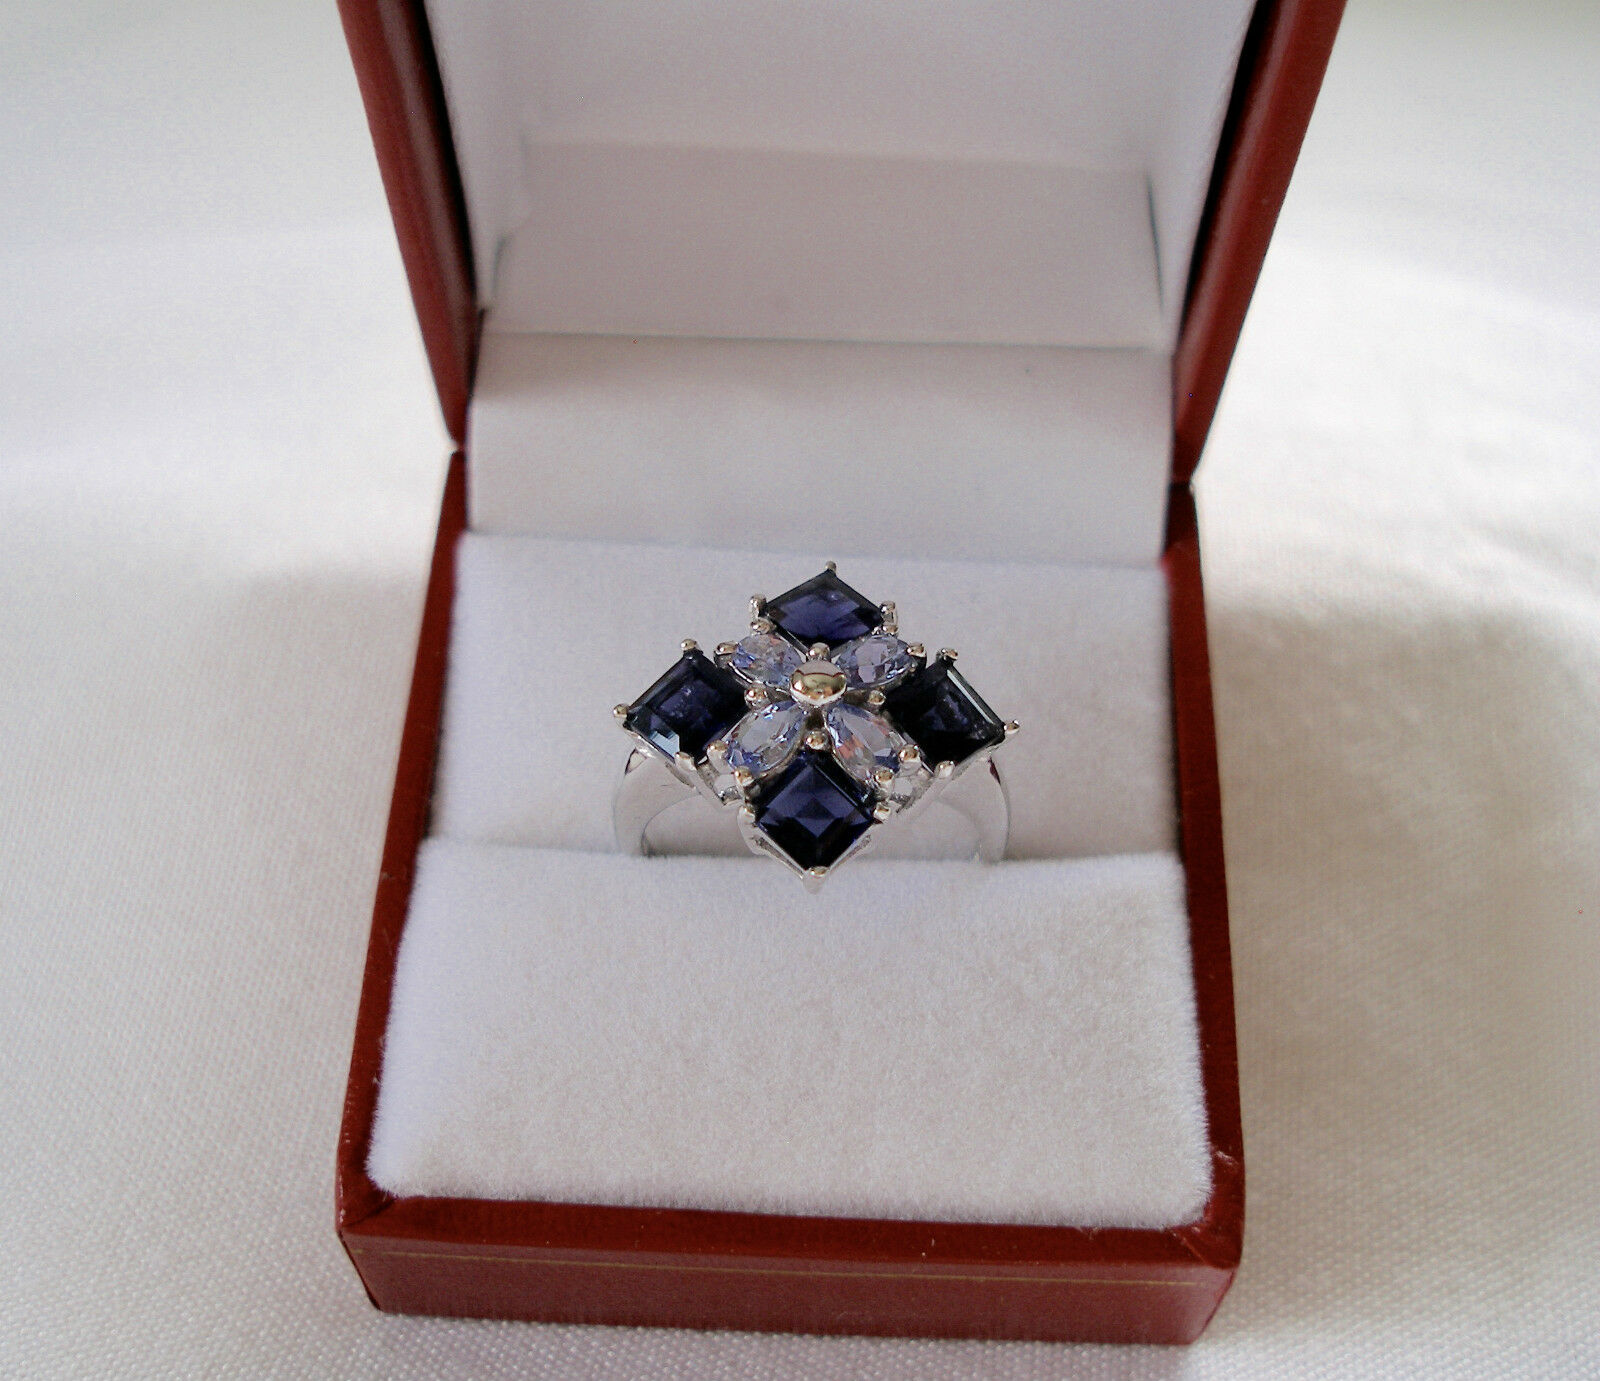 MAGNOLIA-  2.95 Ct. Iolite & Tanzanite  10k White gold Ring